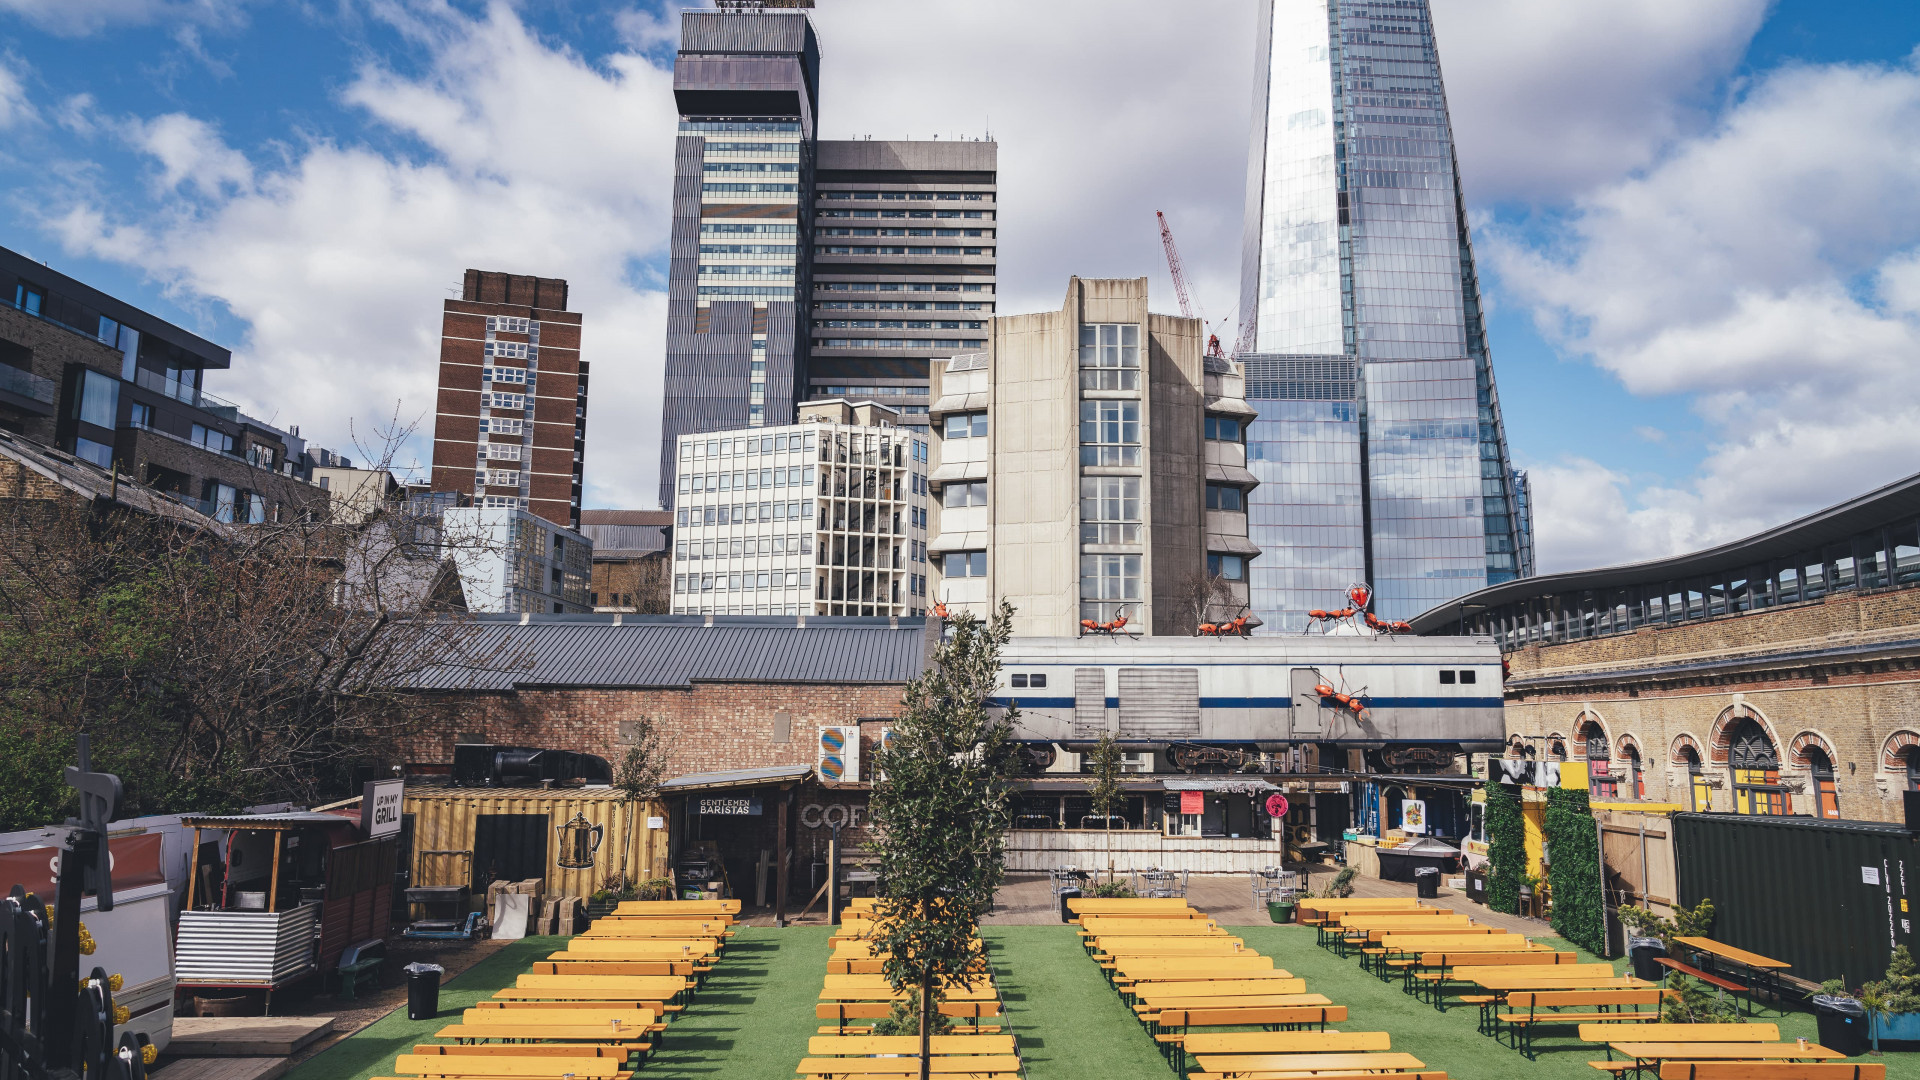 A photo of Vinegar Yard in London Bridge, a large outdoor drinking space with benches